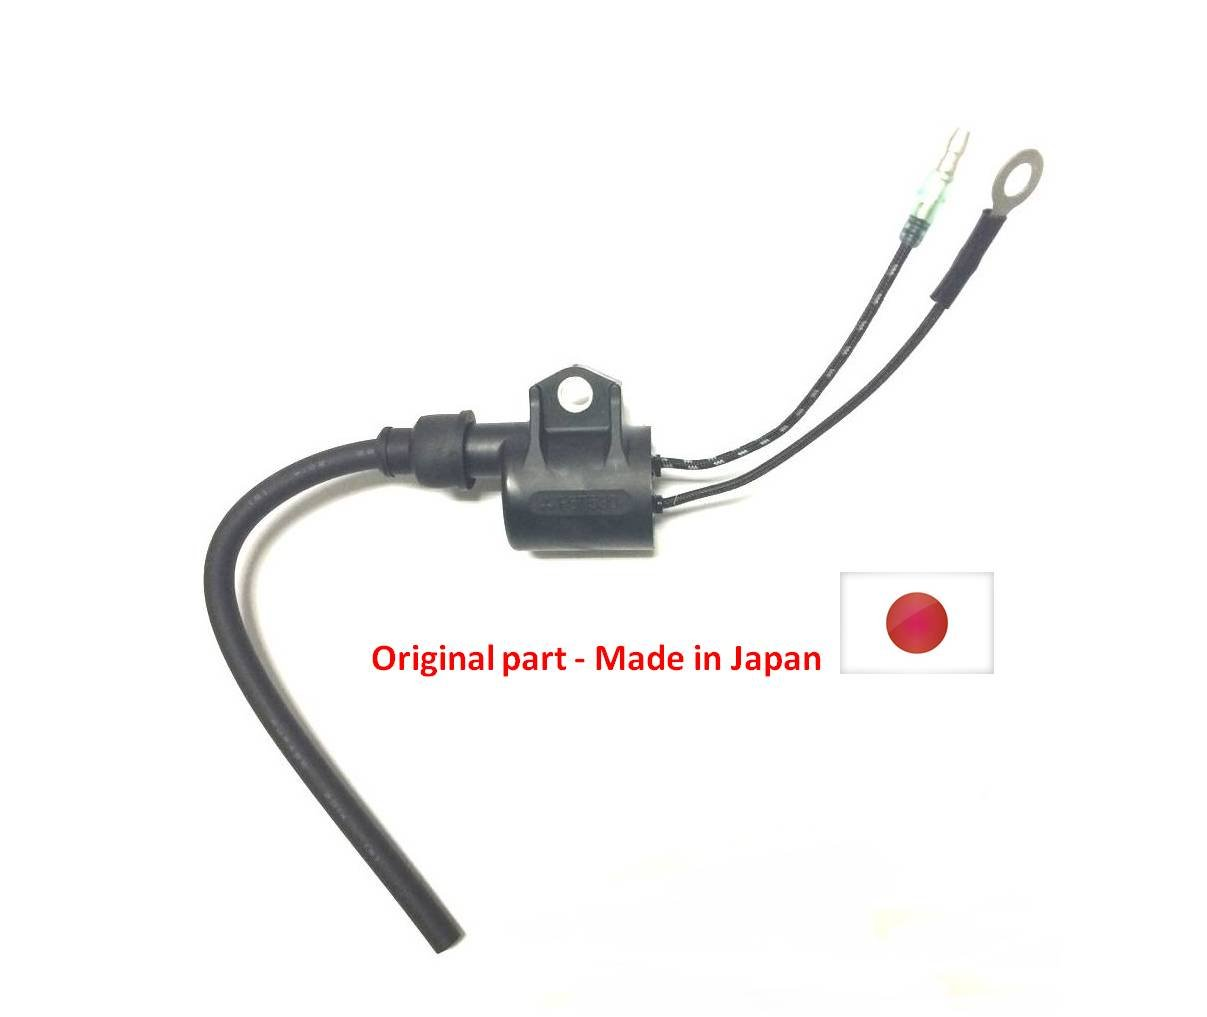 Boat Motor Original Made in Japan Ignition Coil Assy for Yamaha Outboard 6H5-85570-00 C 25HP - 50HP 2 stroke Engine by Yamadura